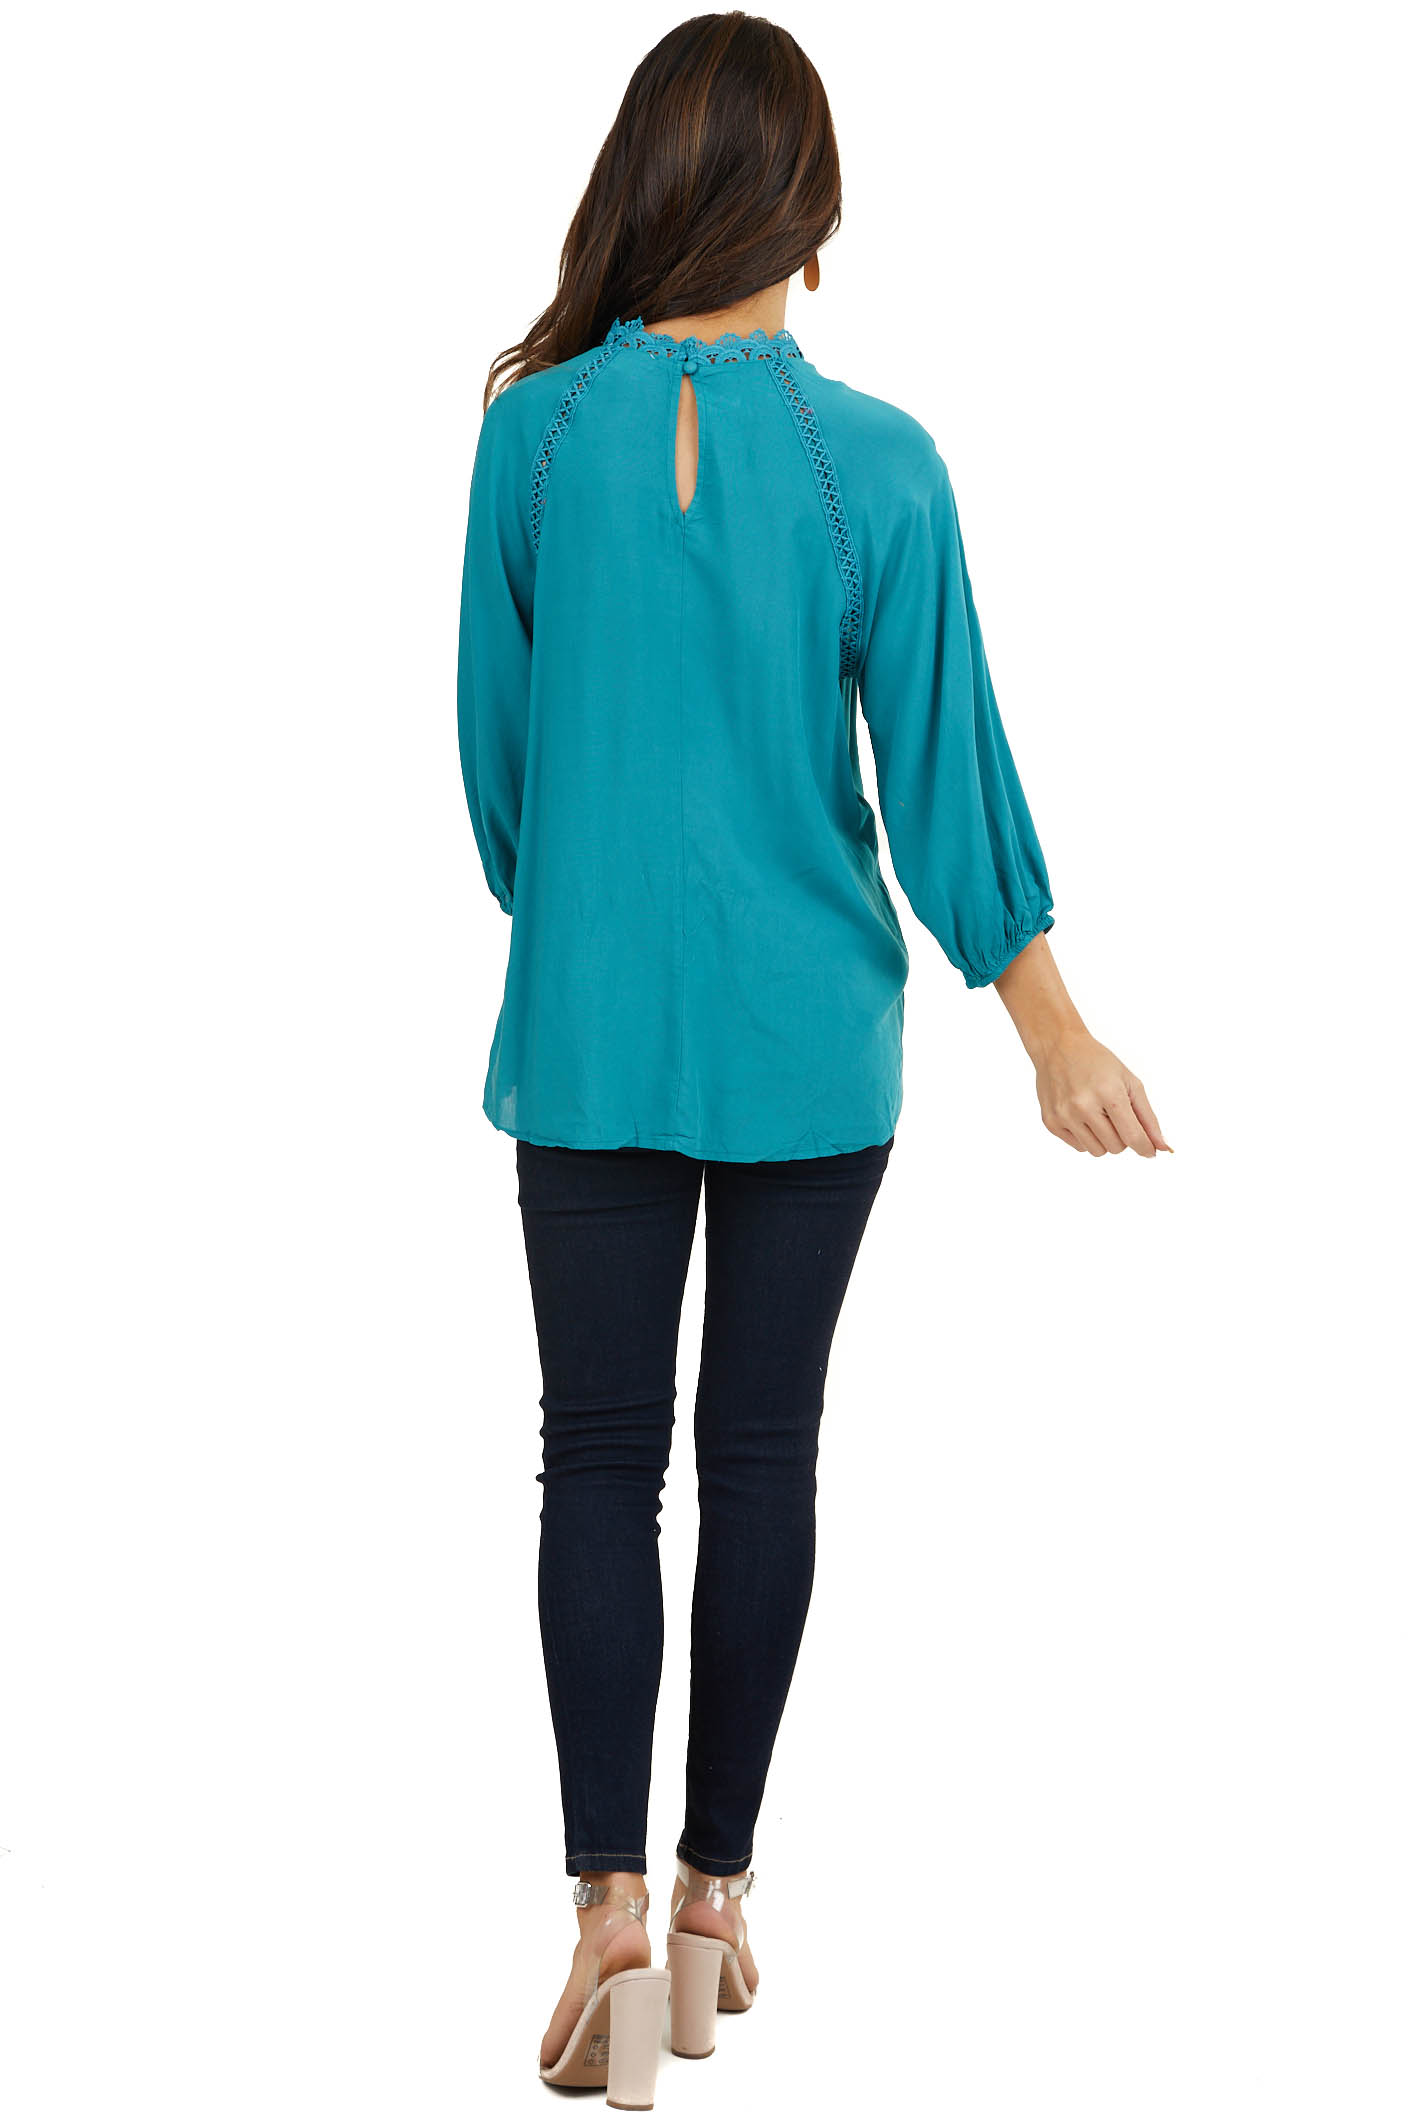 Dark Teal Woven Top with Crochet Detail and Keyhole Back